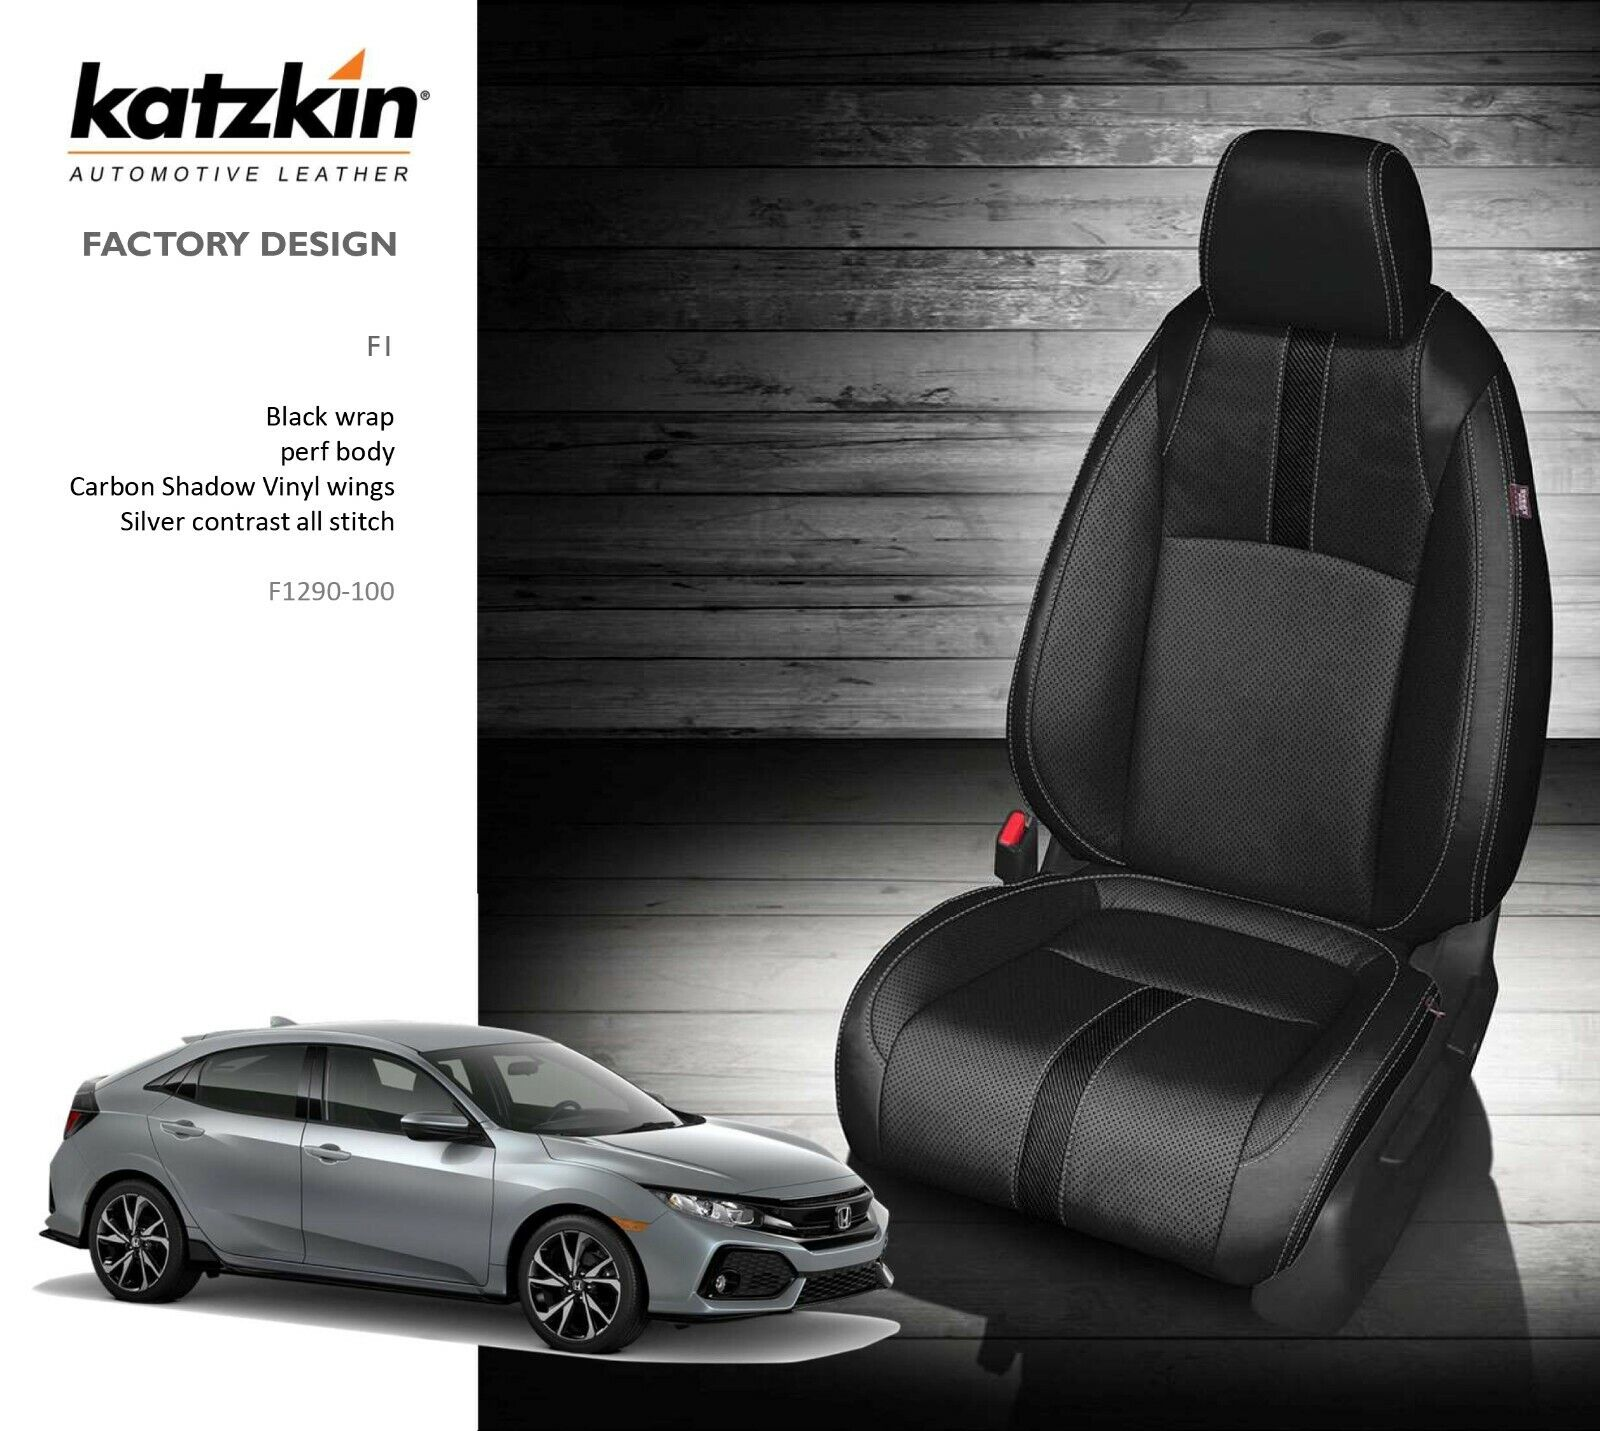 Tz Leatherette Custom Exact Fit Full Set Car Seat Covers Front Rear Seat Covers For Honda Civic Hatchback 2016 2017 2018 2019 2020 Black With Red Trim Seat Covers Accessories Accessories